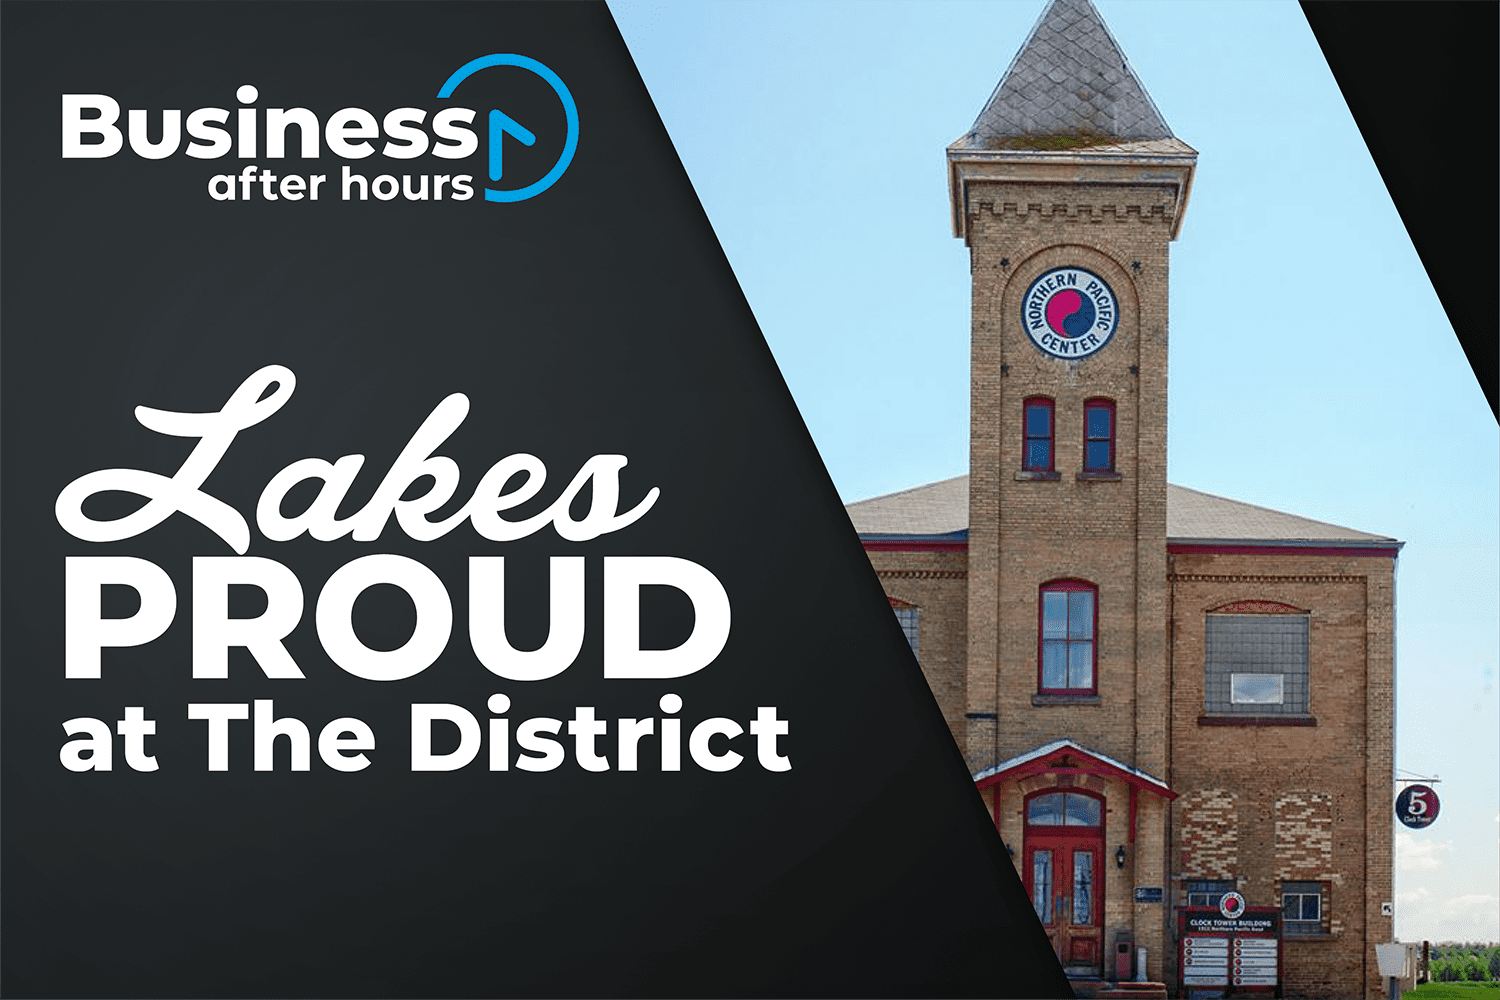 Lakes Proud Business After Hours graphic with Northern Pacific Center photo